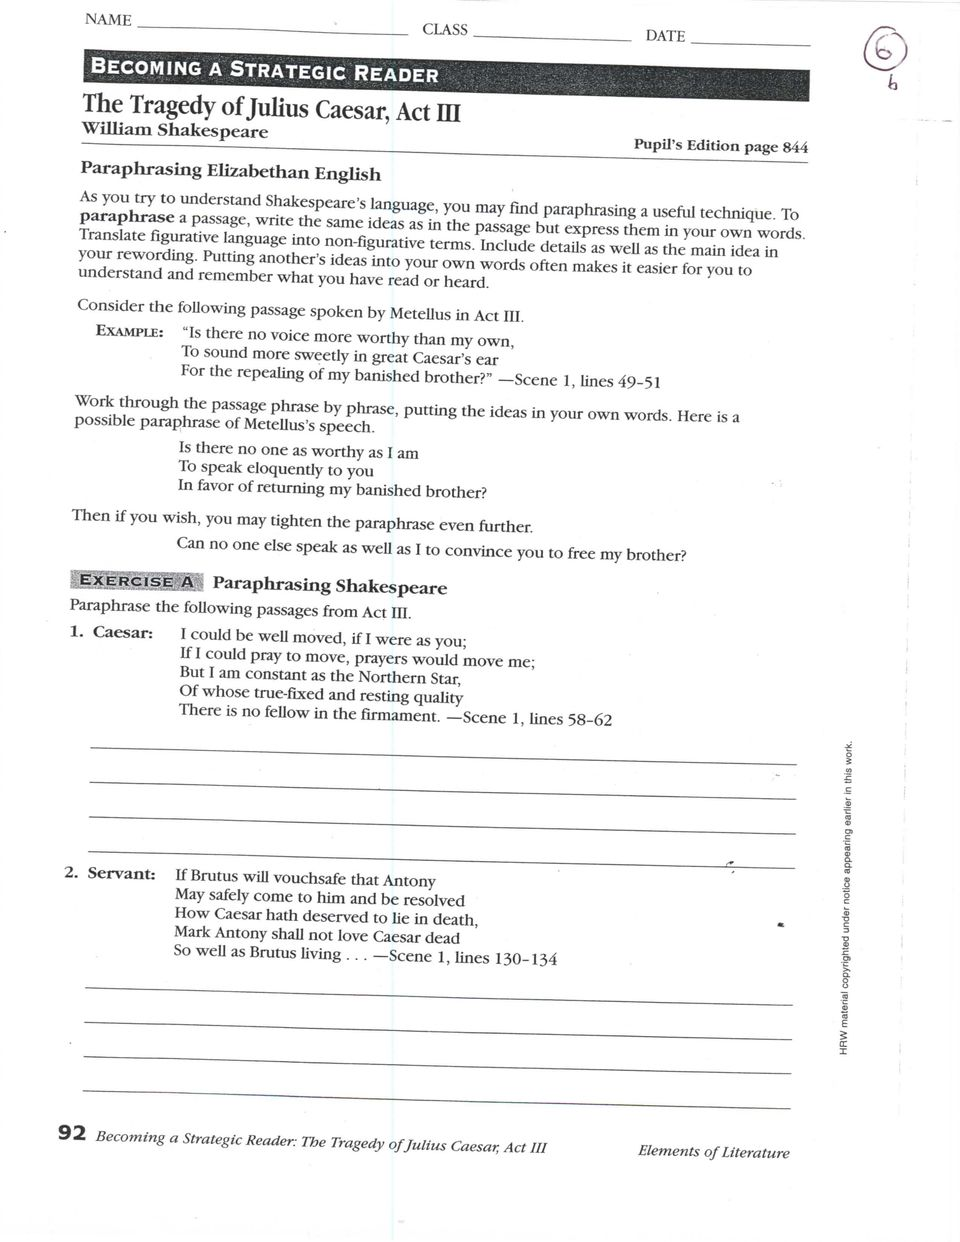 ROMEO AND JULIET STUDY GUIDE ACT 3 - ACT 2 ROMEO AND JULIET